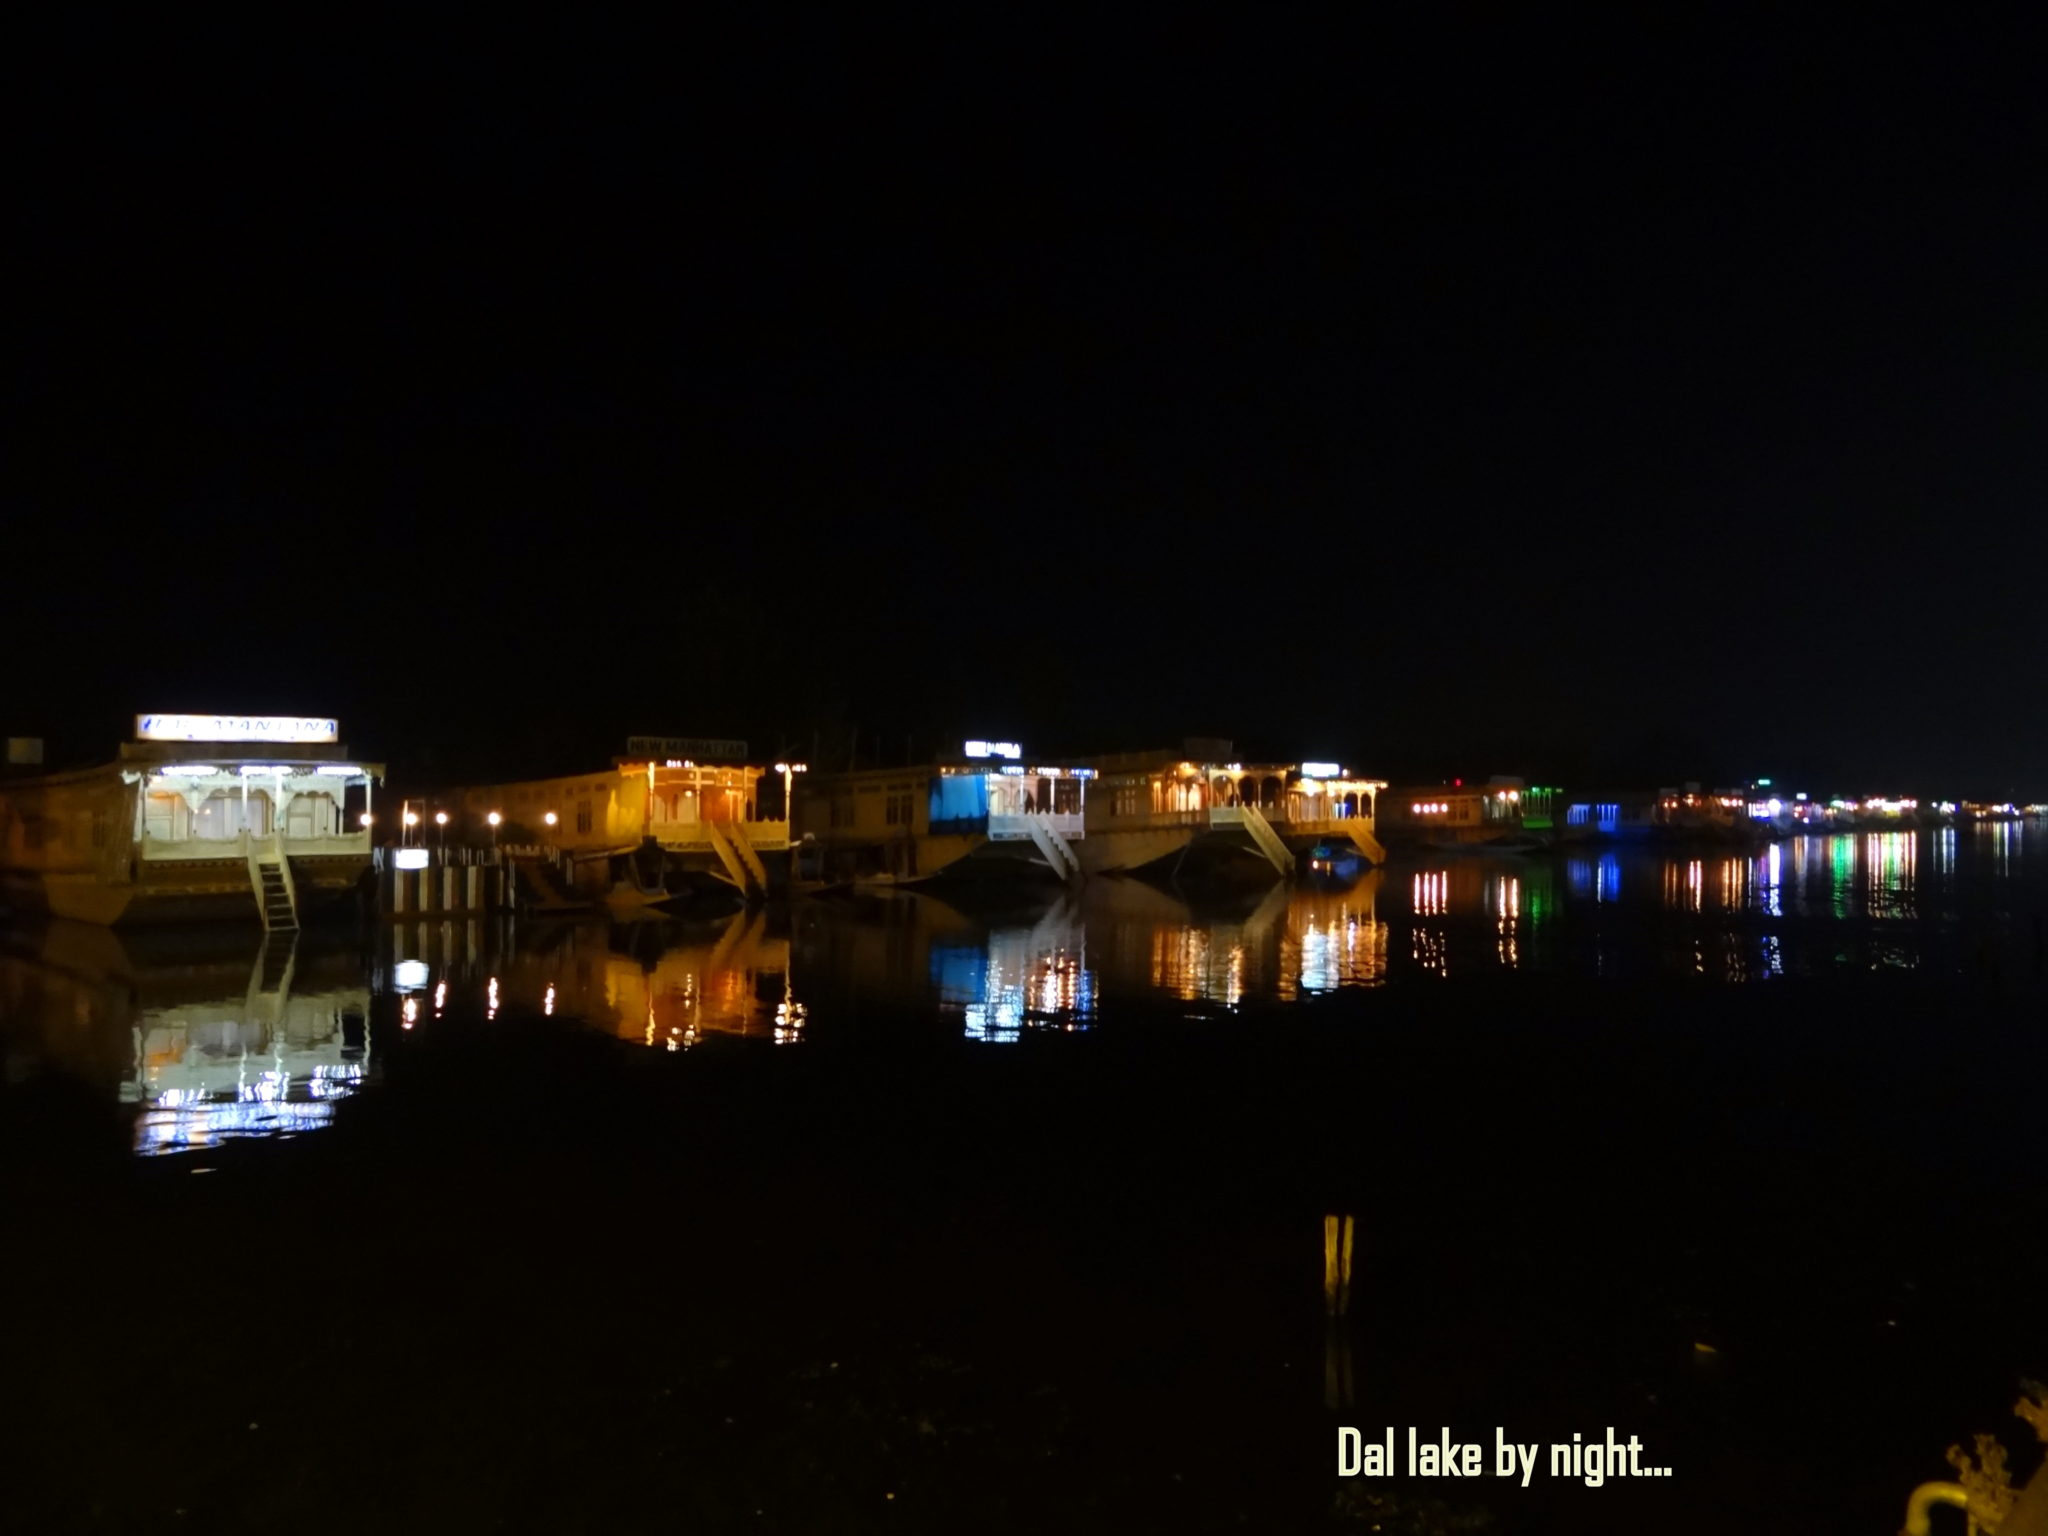 The Houseboats on the lake, at night